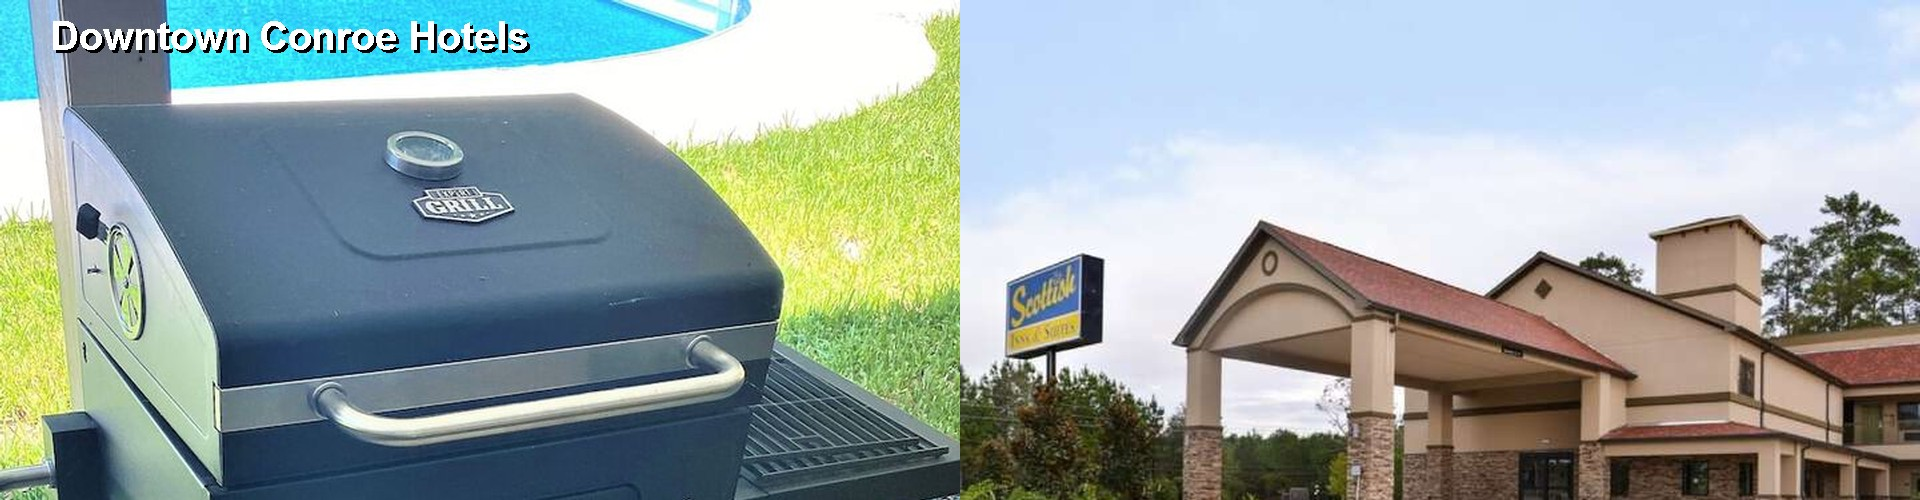 3 Best Hotels near Downtown Conroe